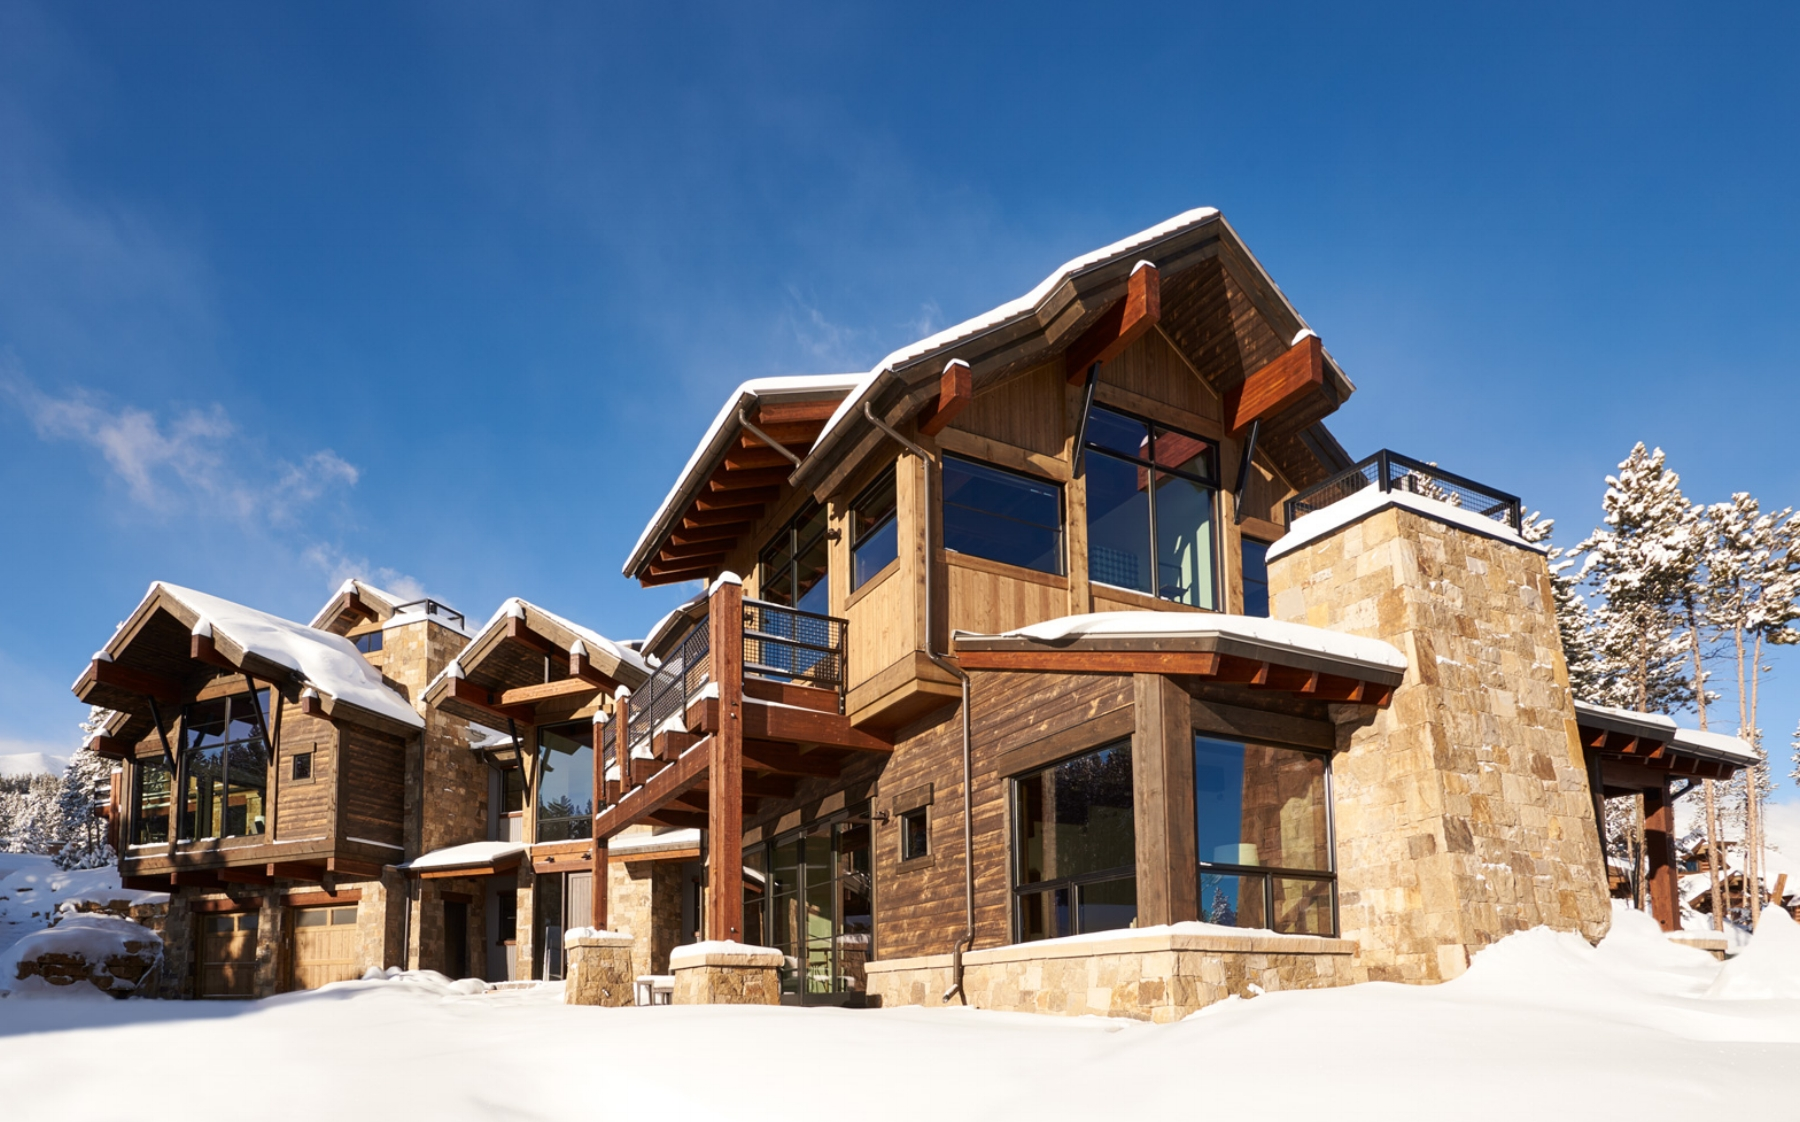 328 Design interior design custom home built in Breckenridge, CO material design and selection